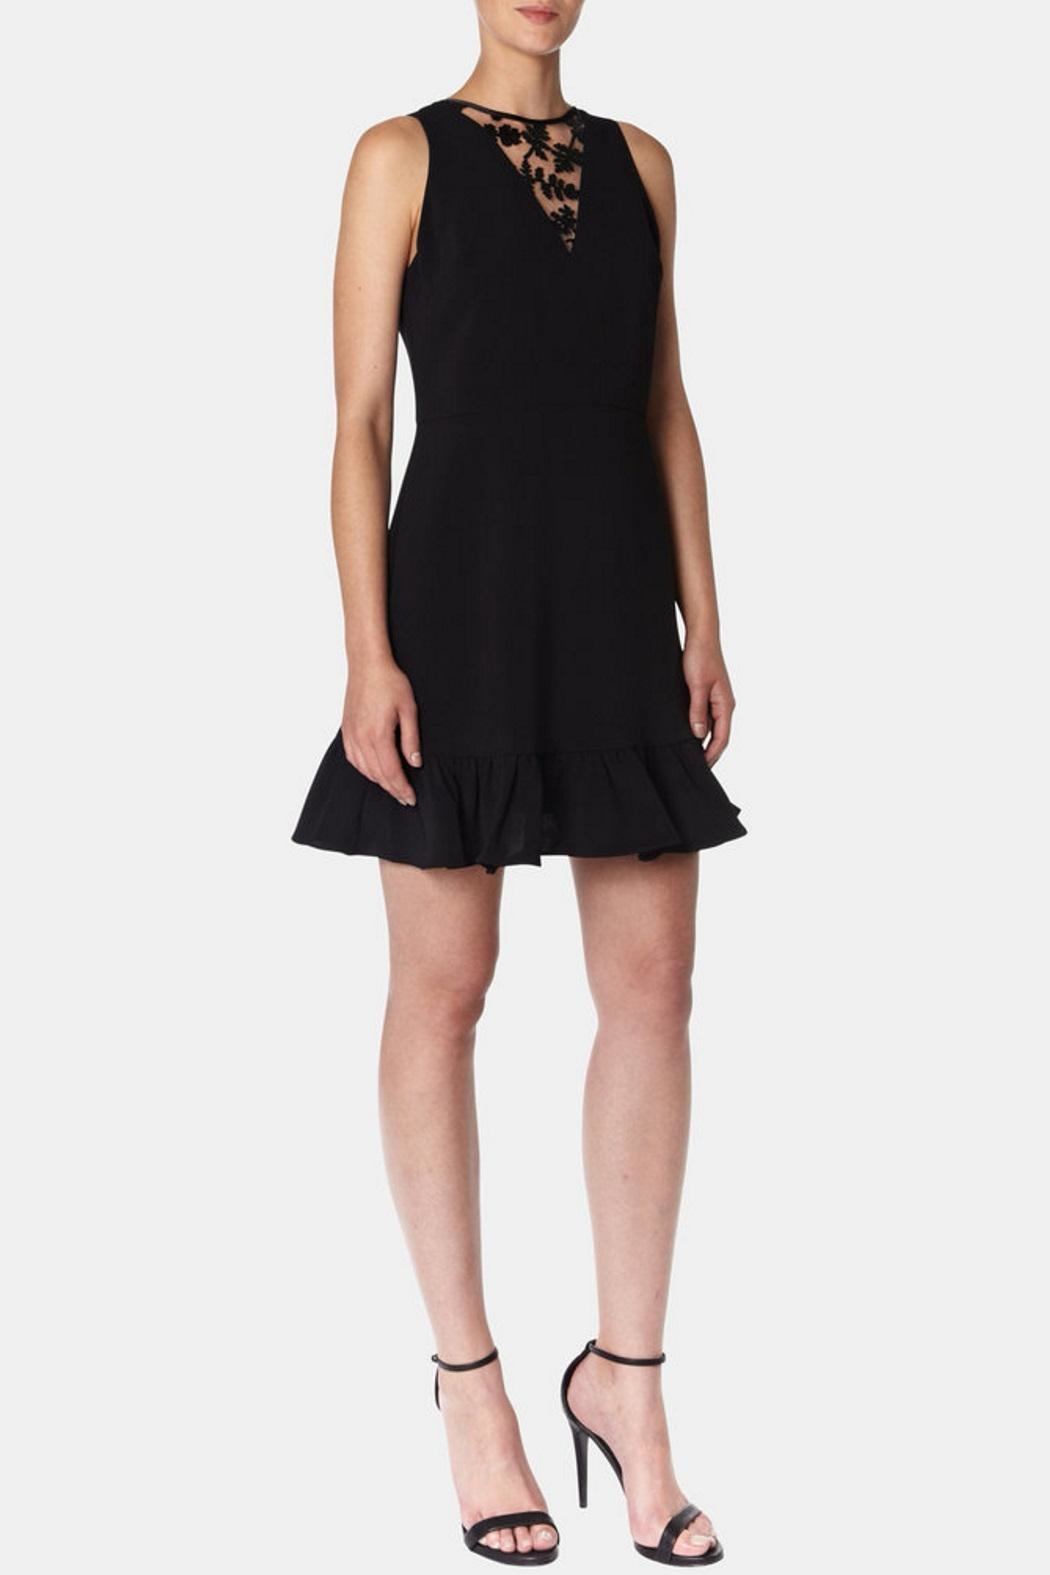 Cooper & Ella Gabriella Party Dress - Front Cropped Image